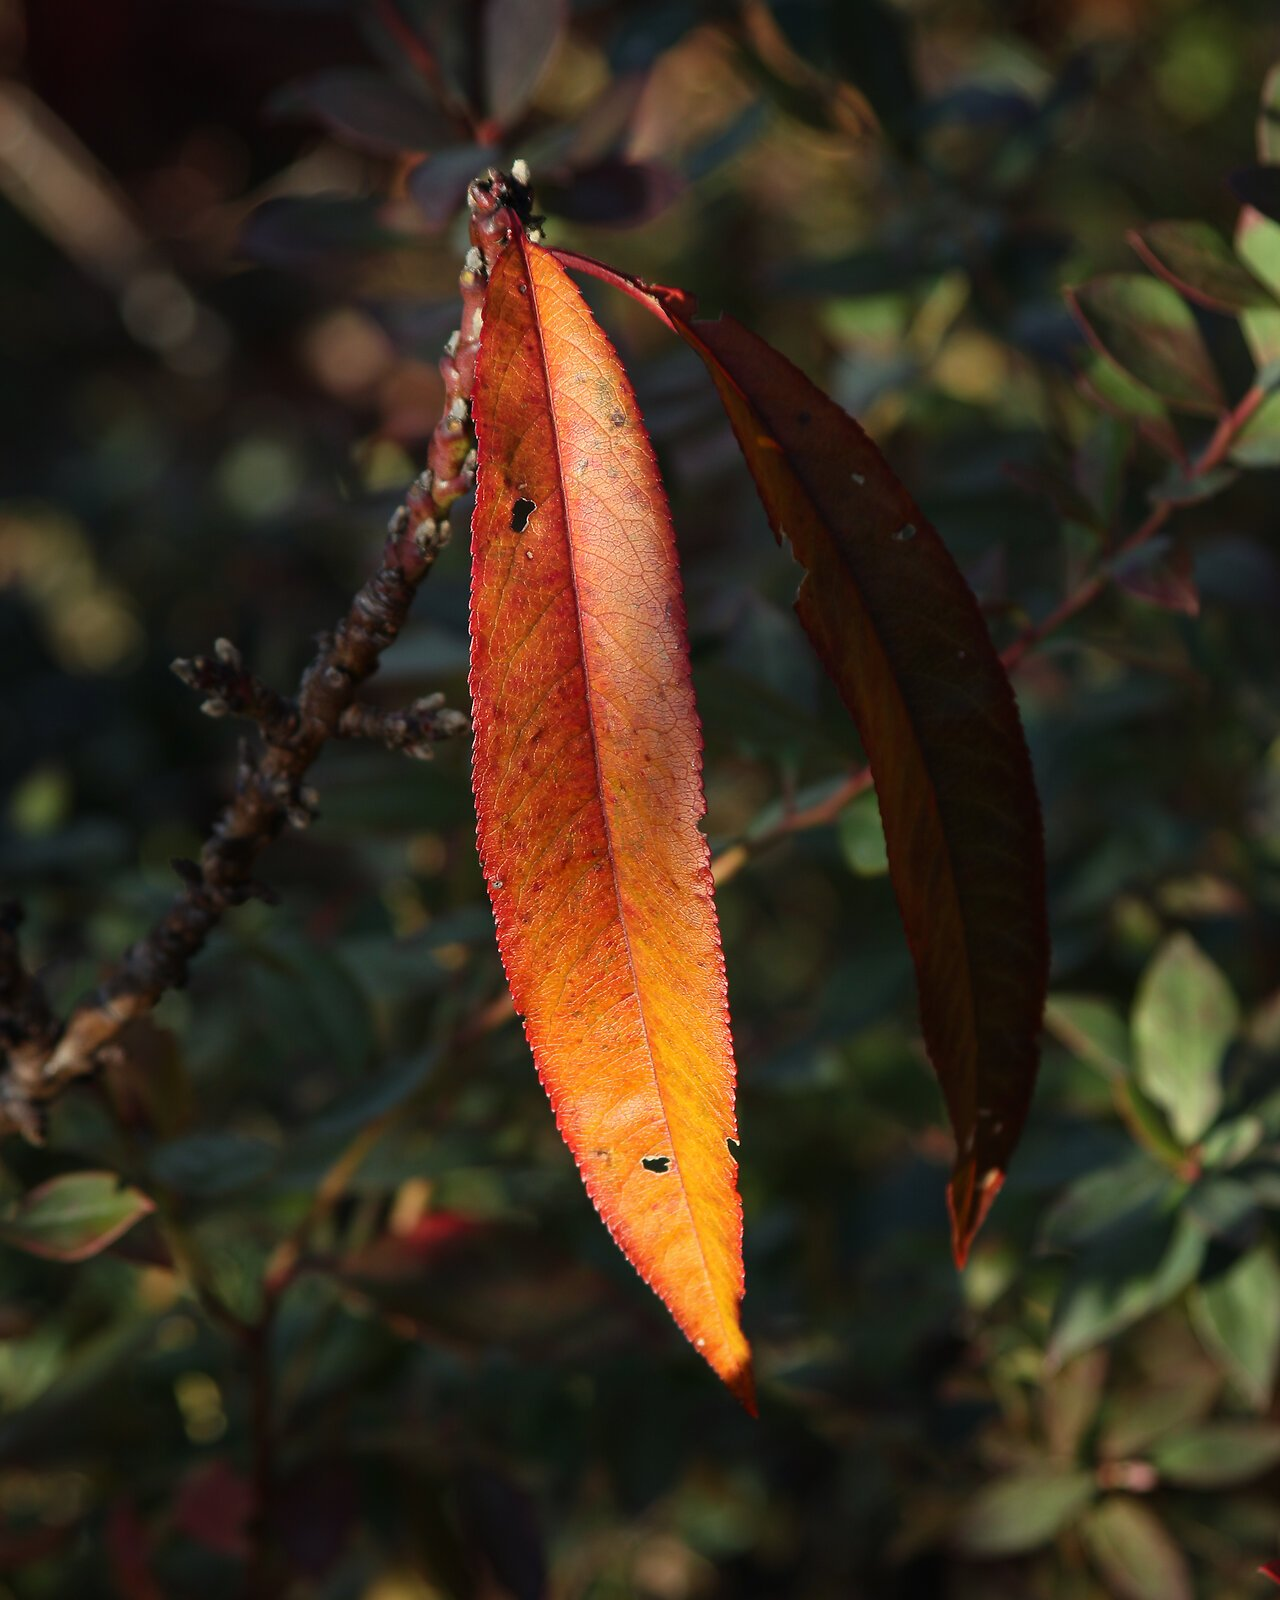 orange_leaf_CanM100_28to105_Dec20.jpg